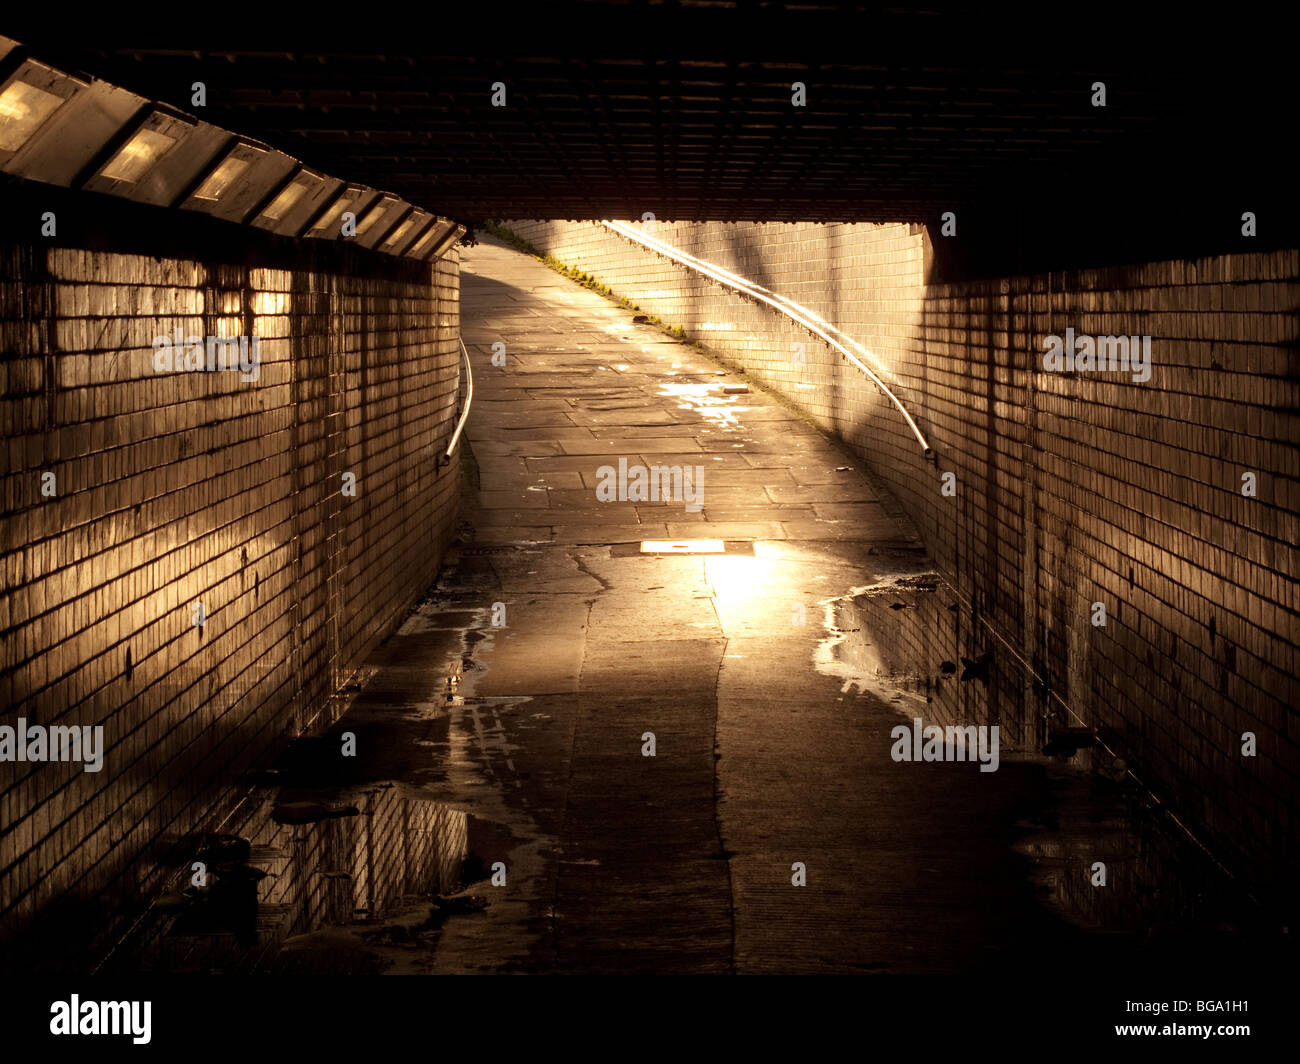 Railway underpass in castleford west yorkshire. - Stock Image